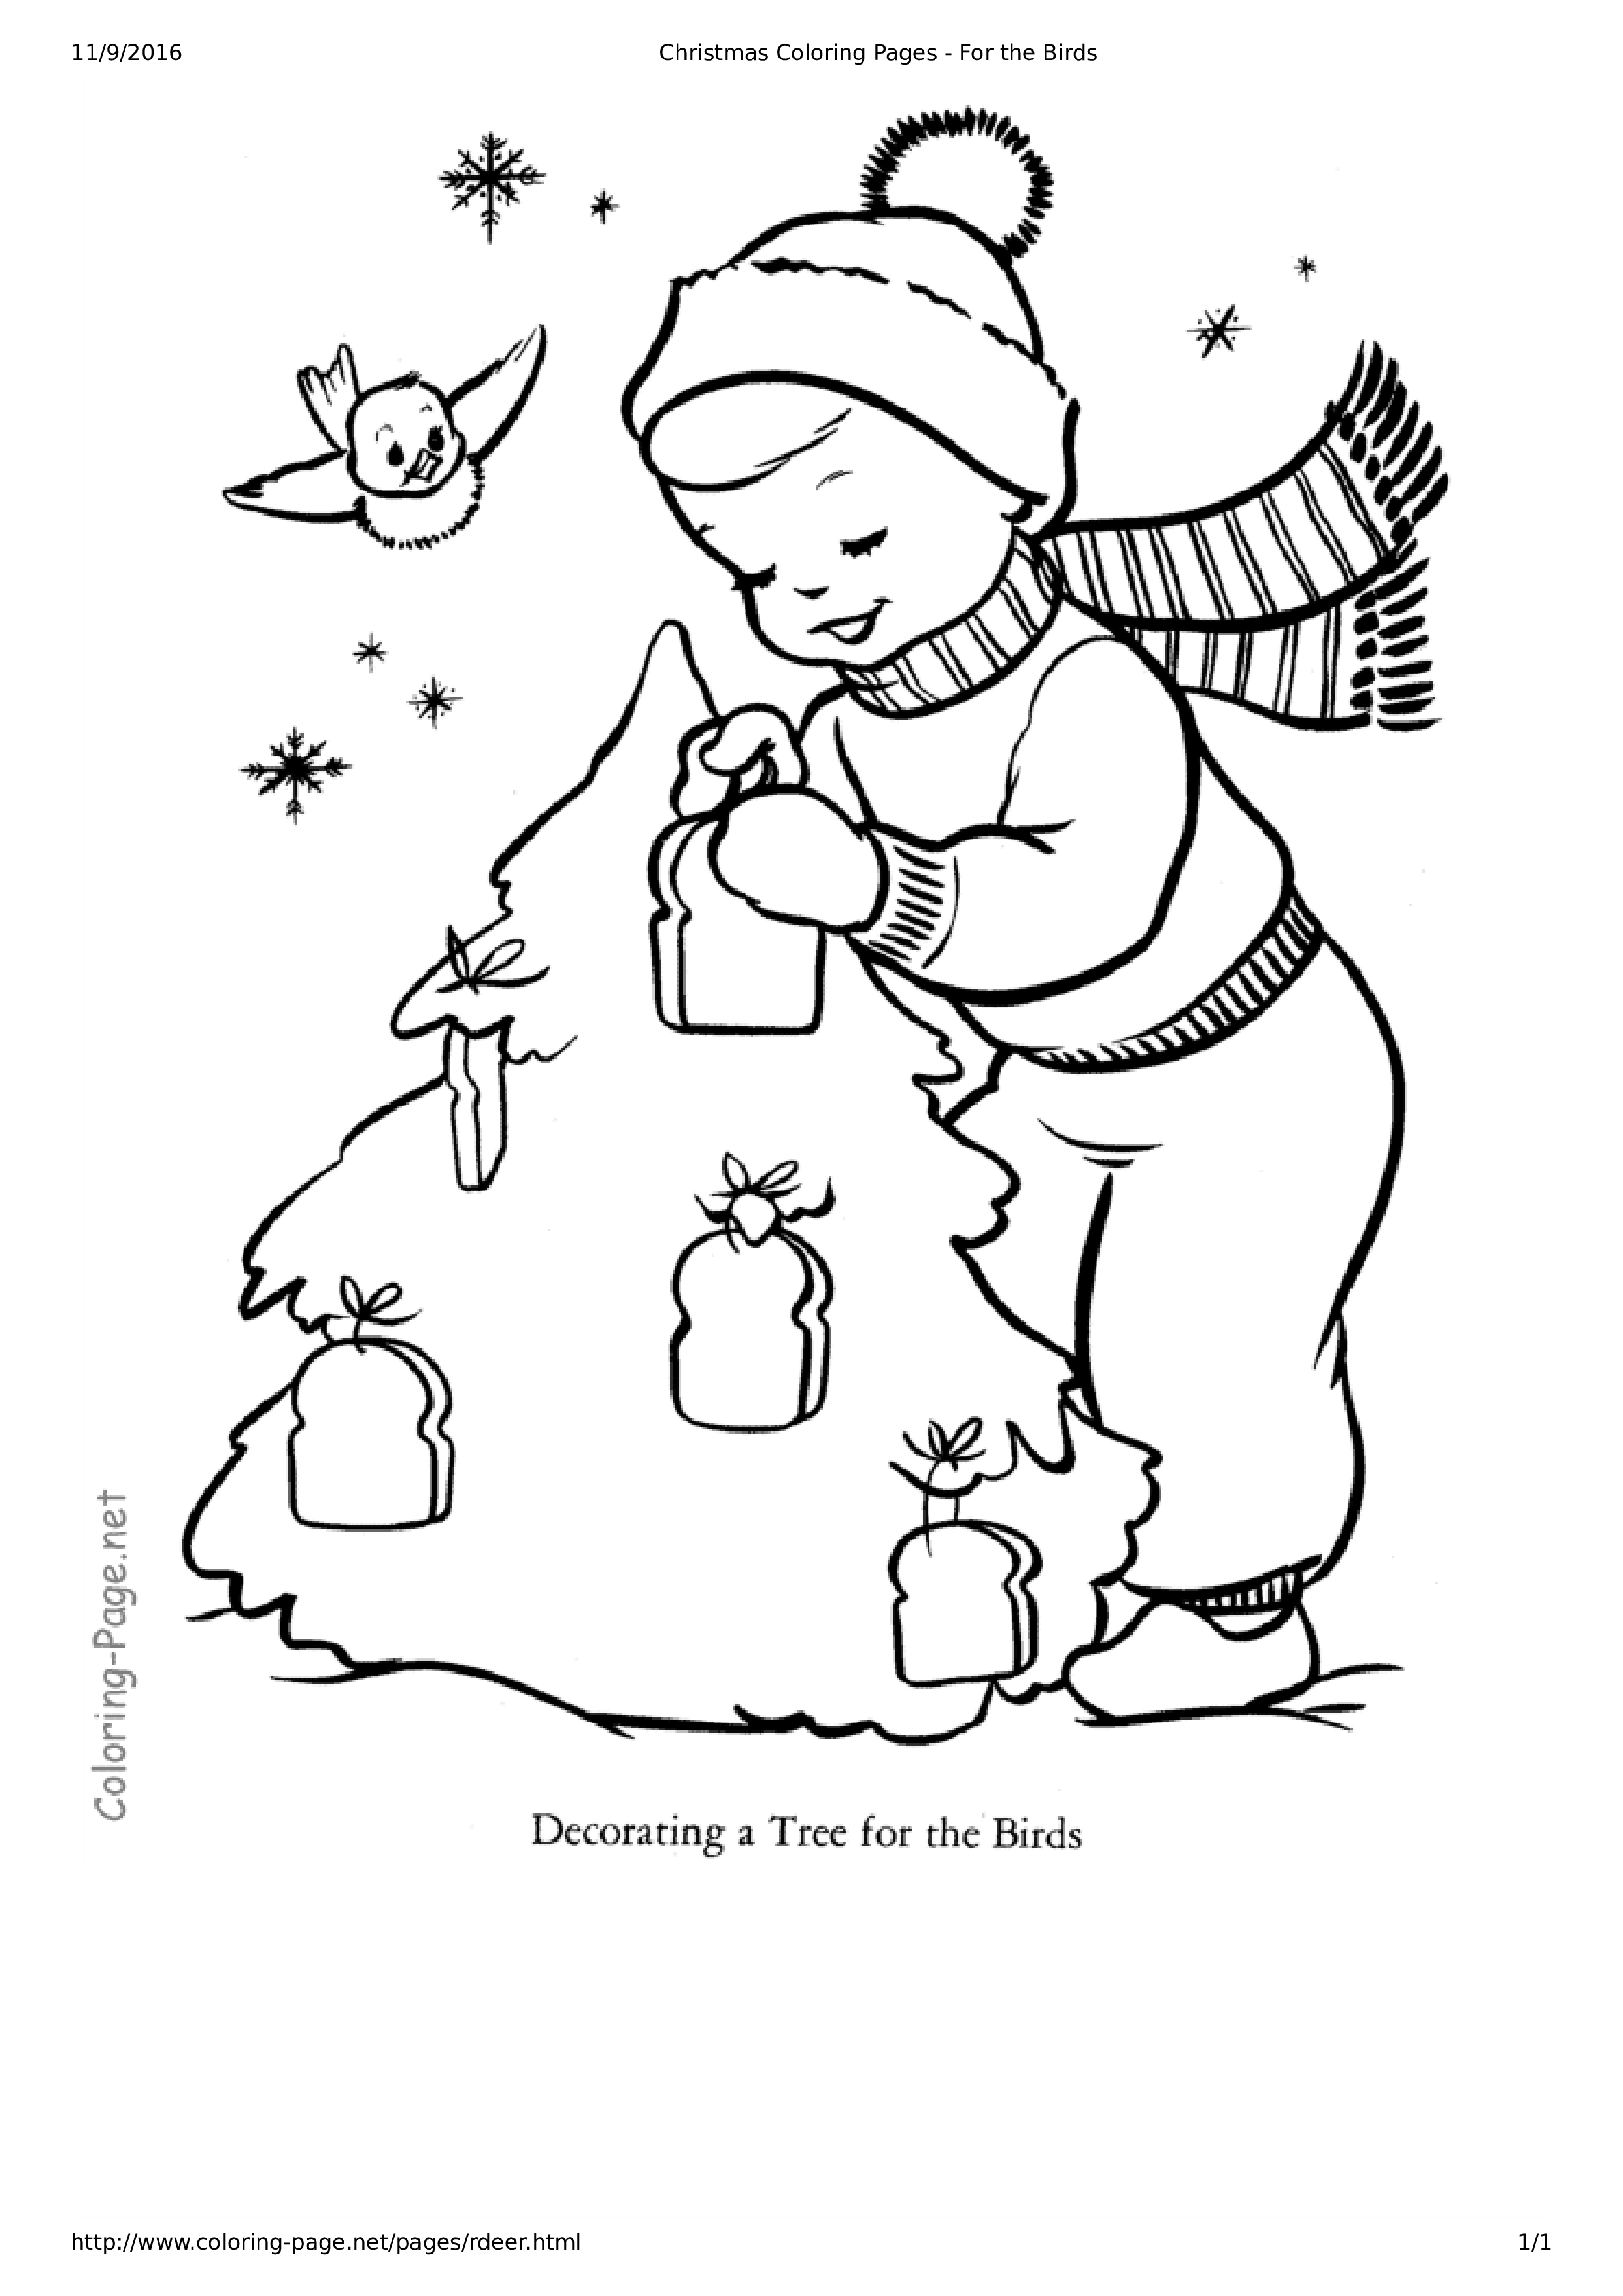 Cute Christmas Coloring Page main image